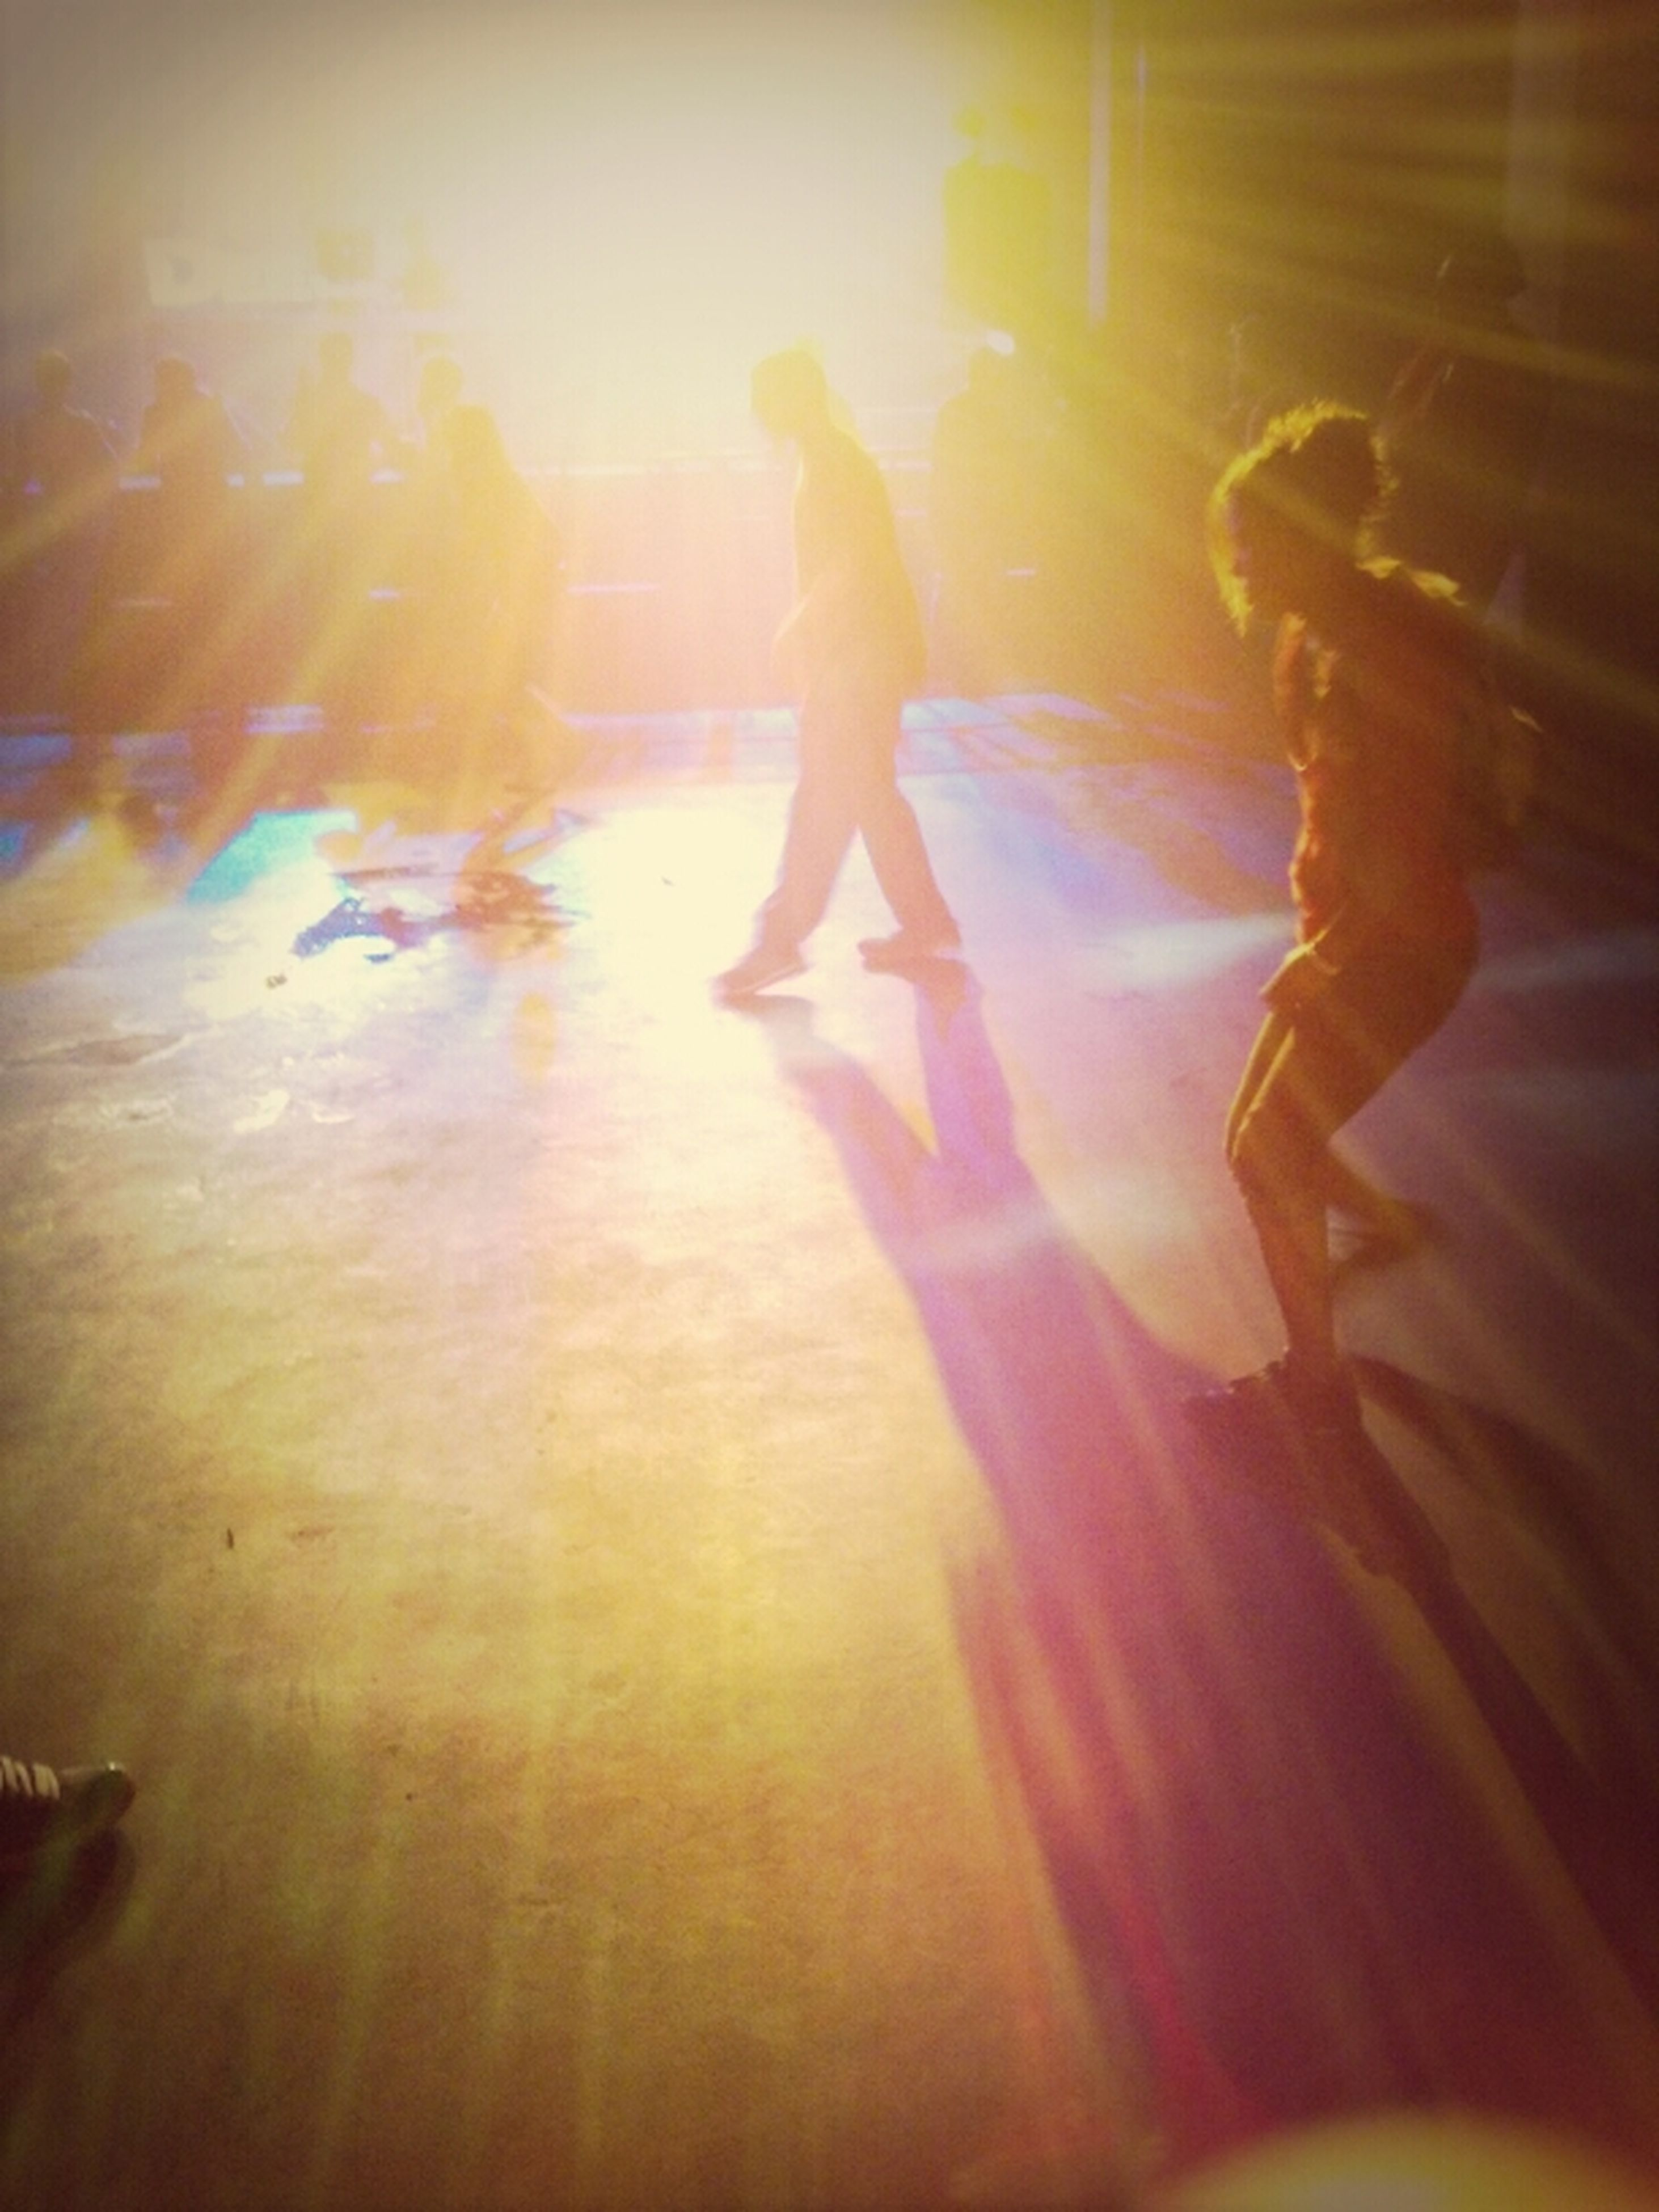 sunbeam, lens flare, sun, sunlight, lifestyles, leisure activity, sunset, person, men, outdoors, day, bright, nature, orange color, shadow, reflection, sunny